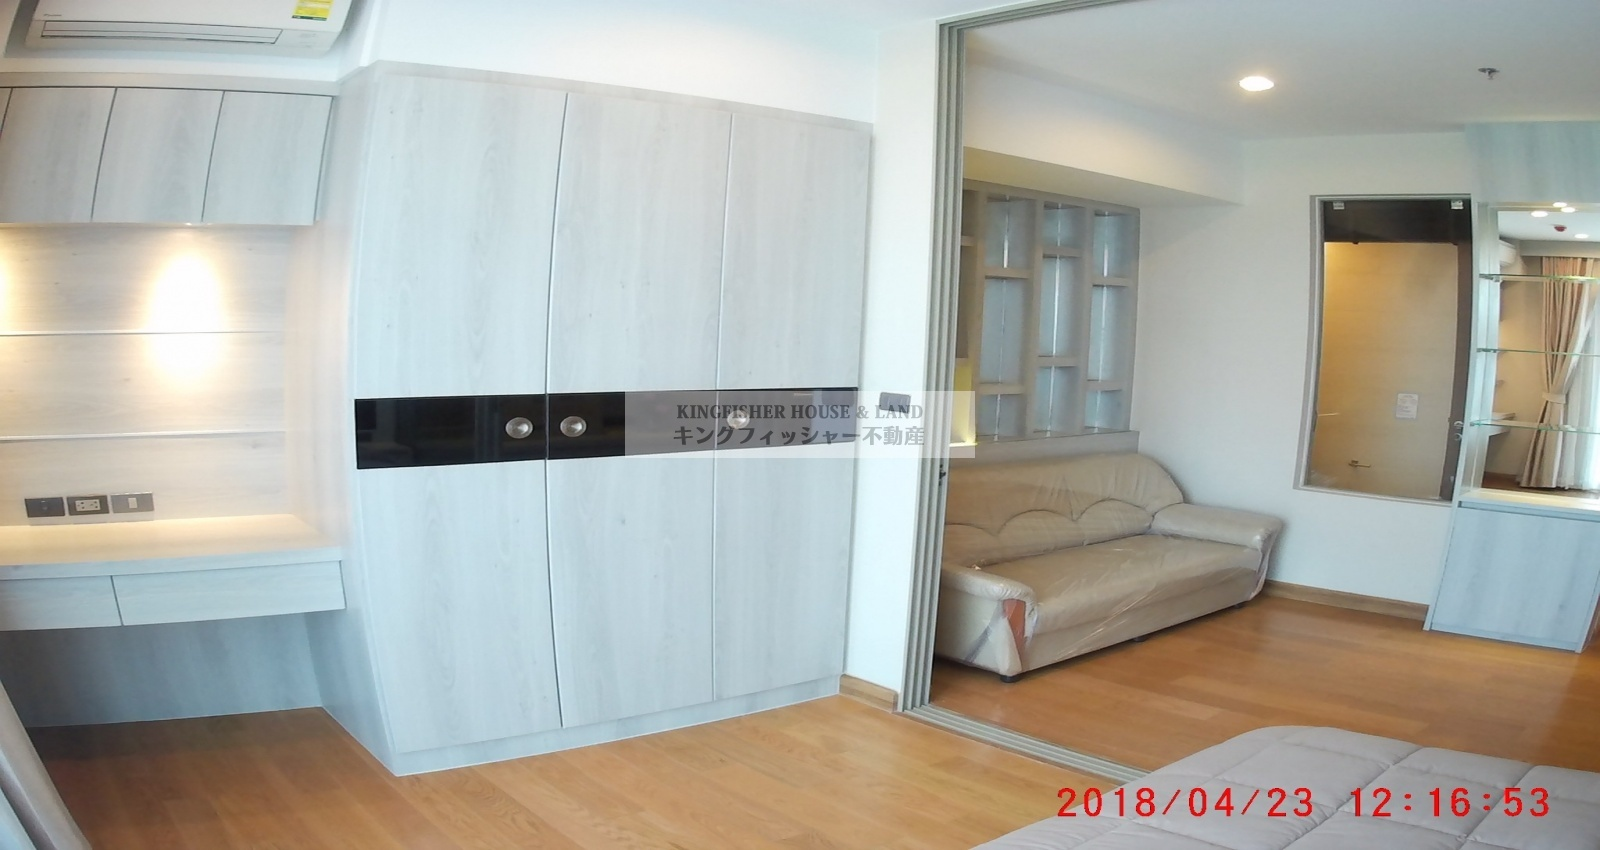 1 Bedrooms, Condominium, For Rent, 1 Bathrooms, Listing ID 1265, Sriracha, Thailand, 20110,